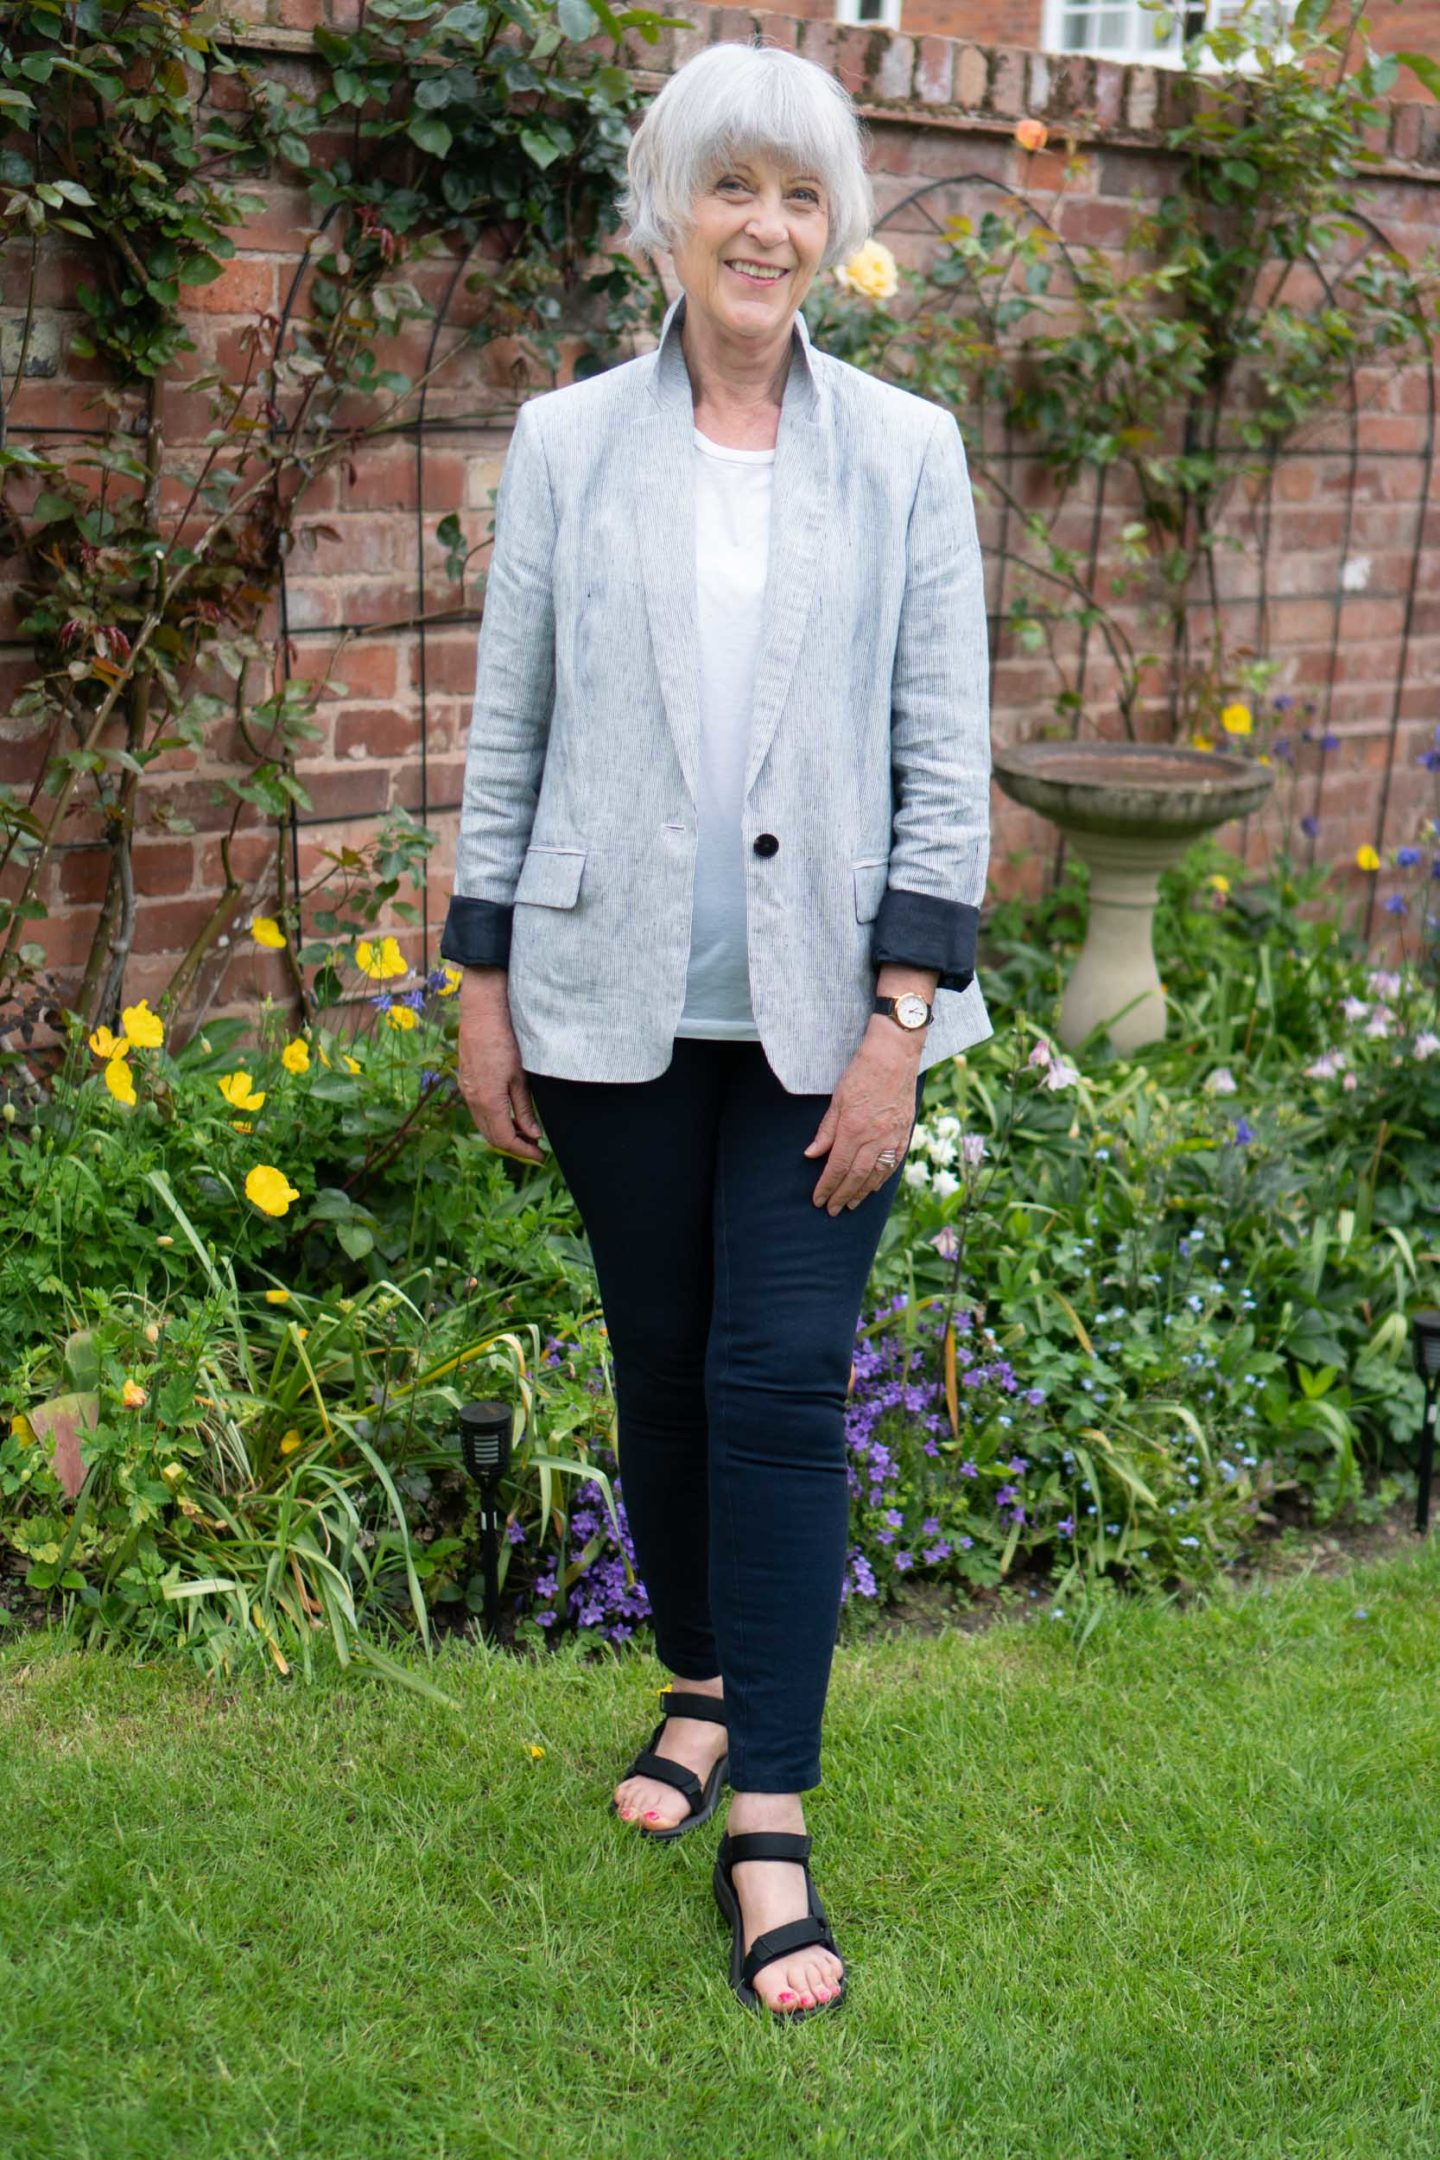 Linen jacket, white tee and navy trousers